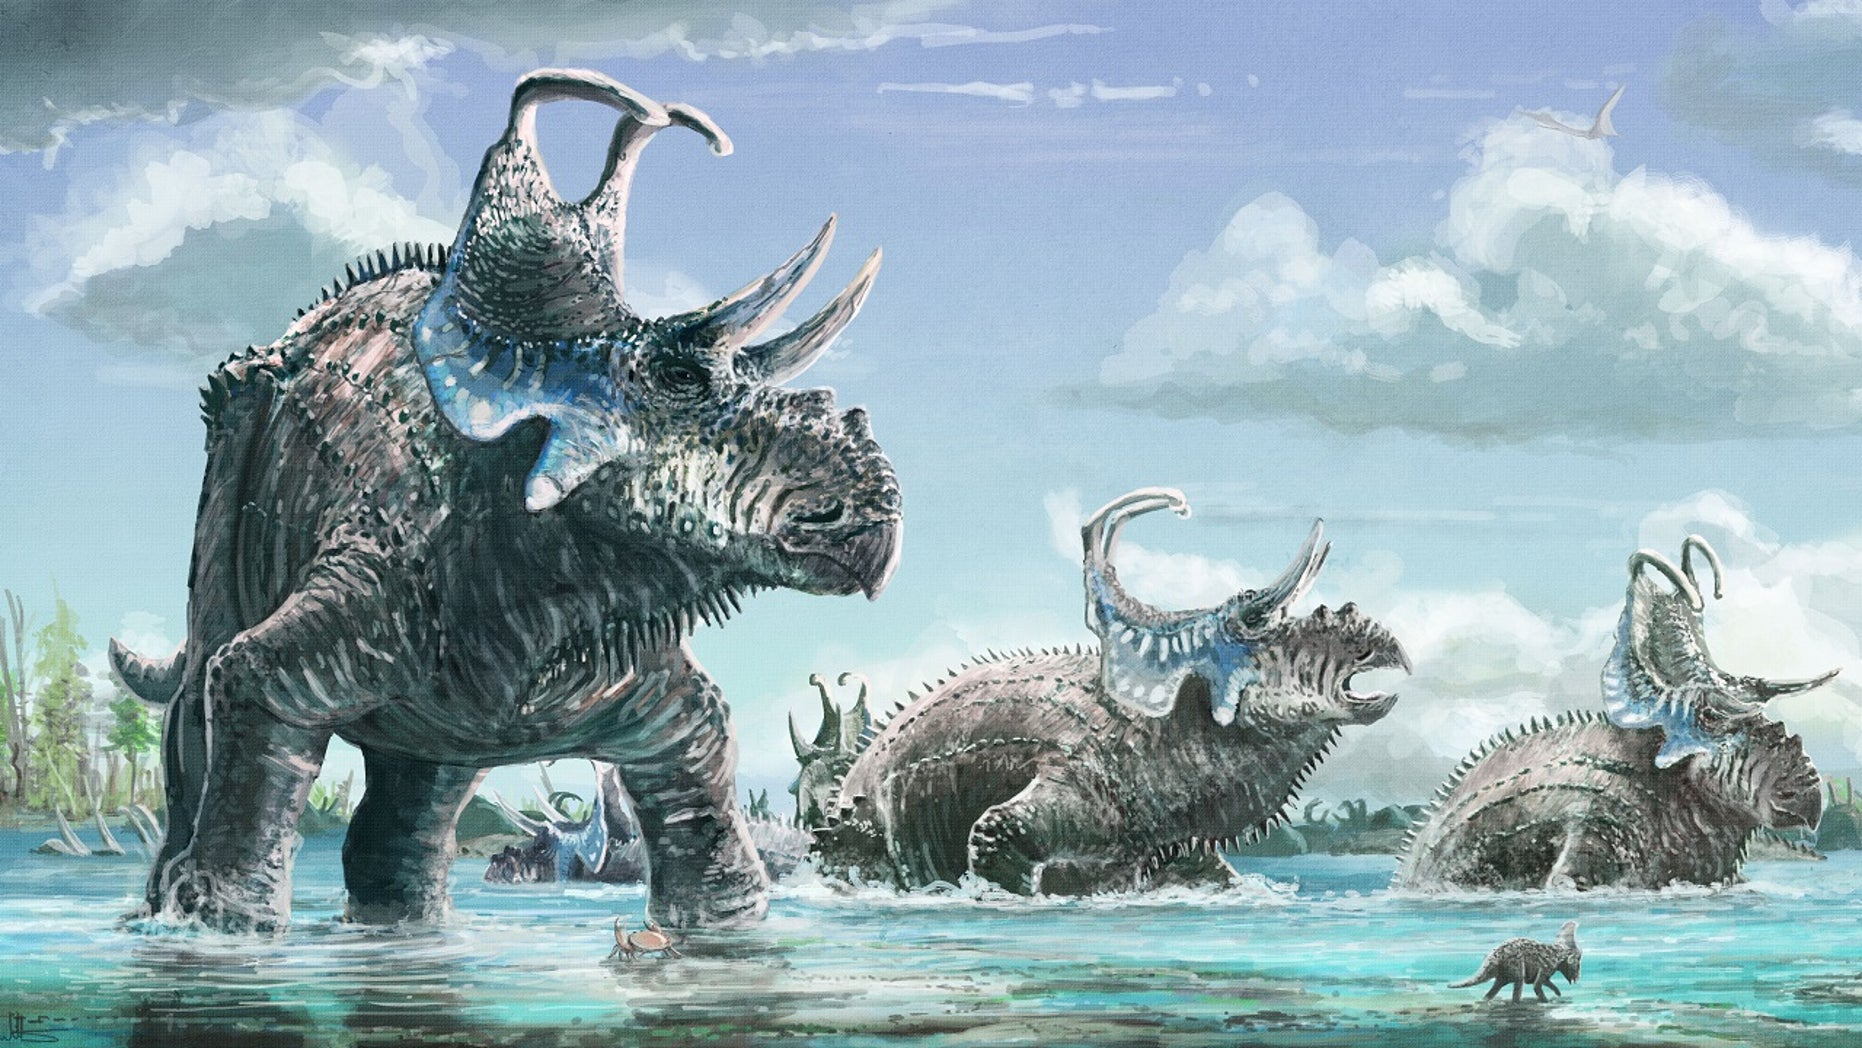 An artist's reconstruction featuring Machairoceratops cronusi, a new species of horned dinosaur from the Late Cretaceous. (Mark Witton)